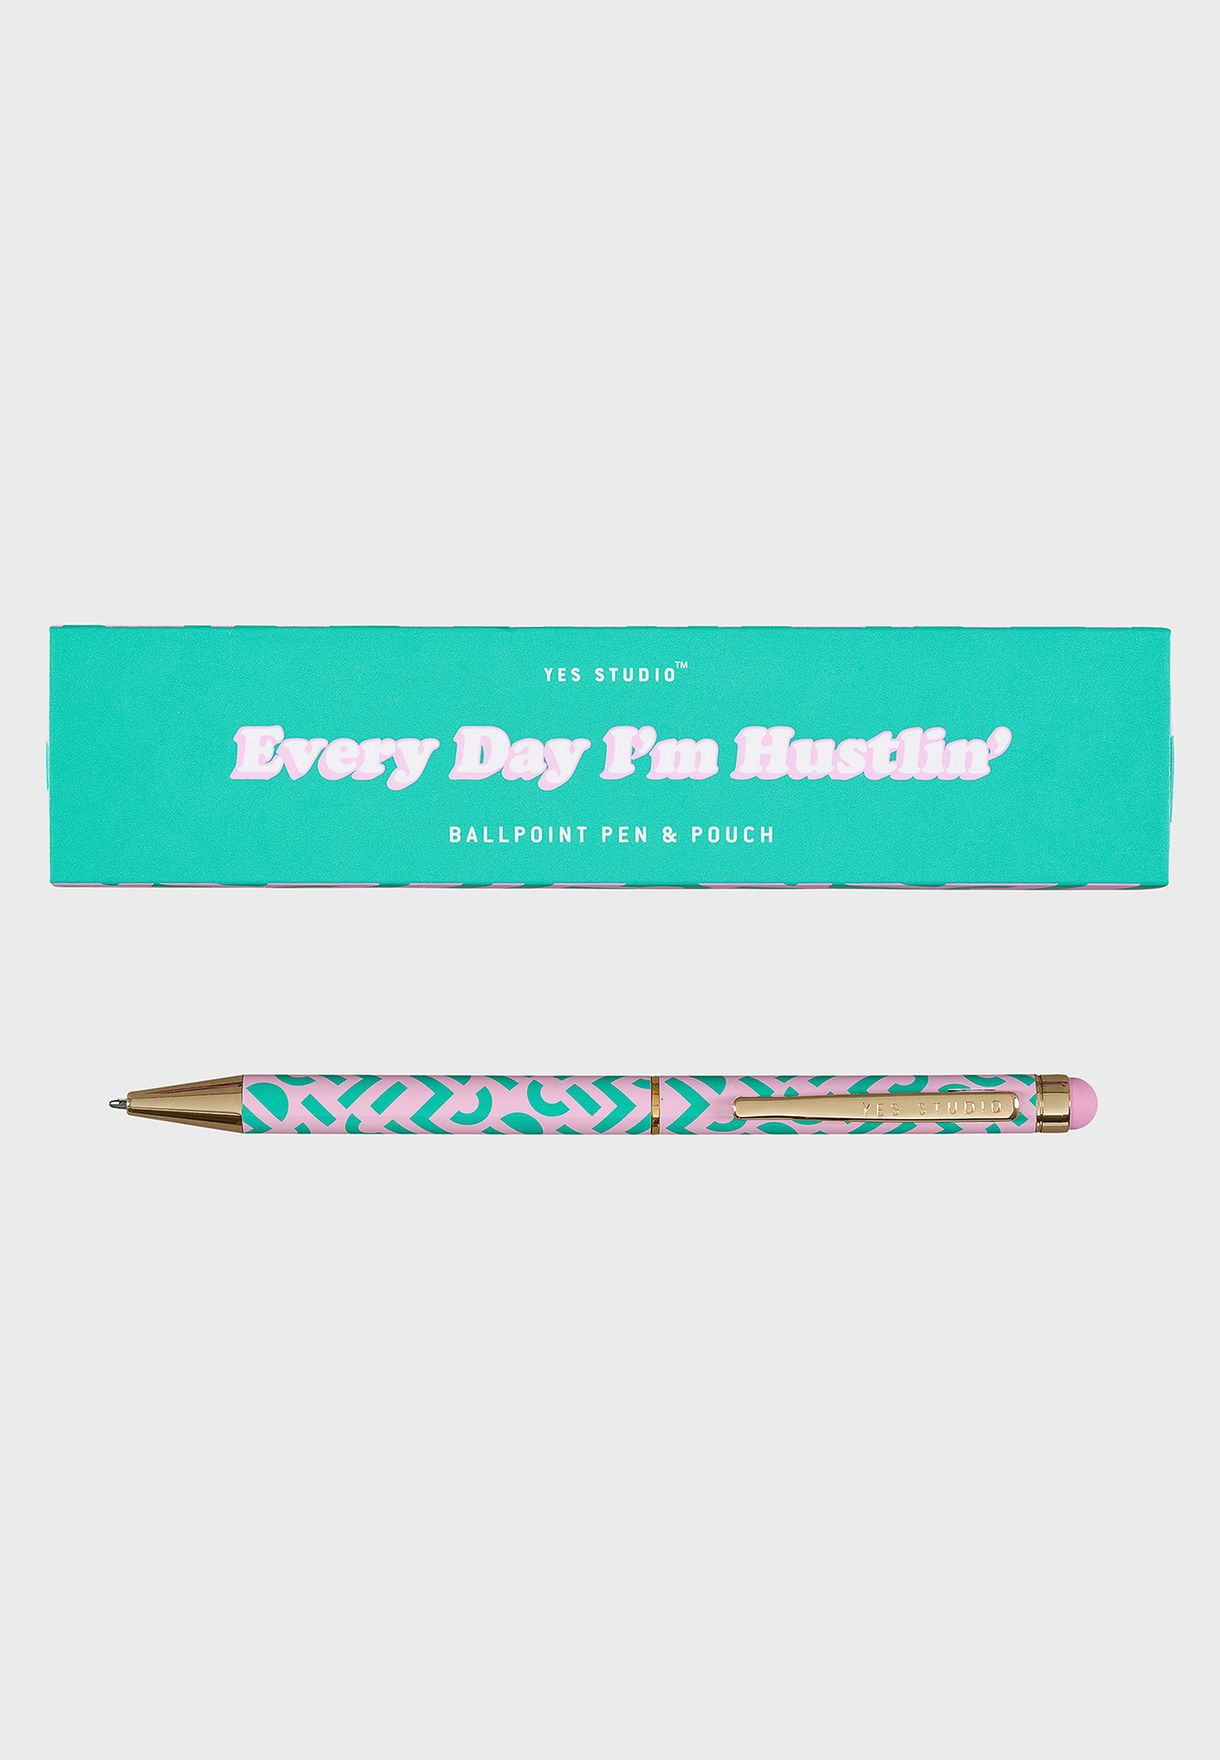 Every Day I'M Hustlin Pen With Case